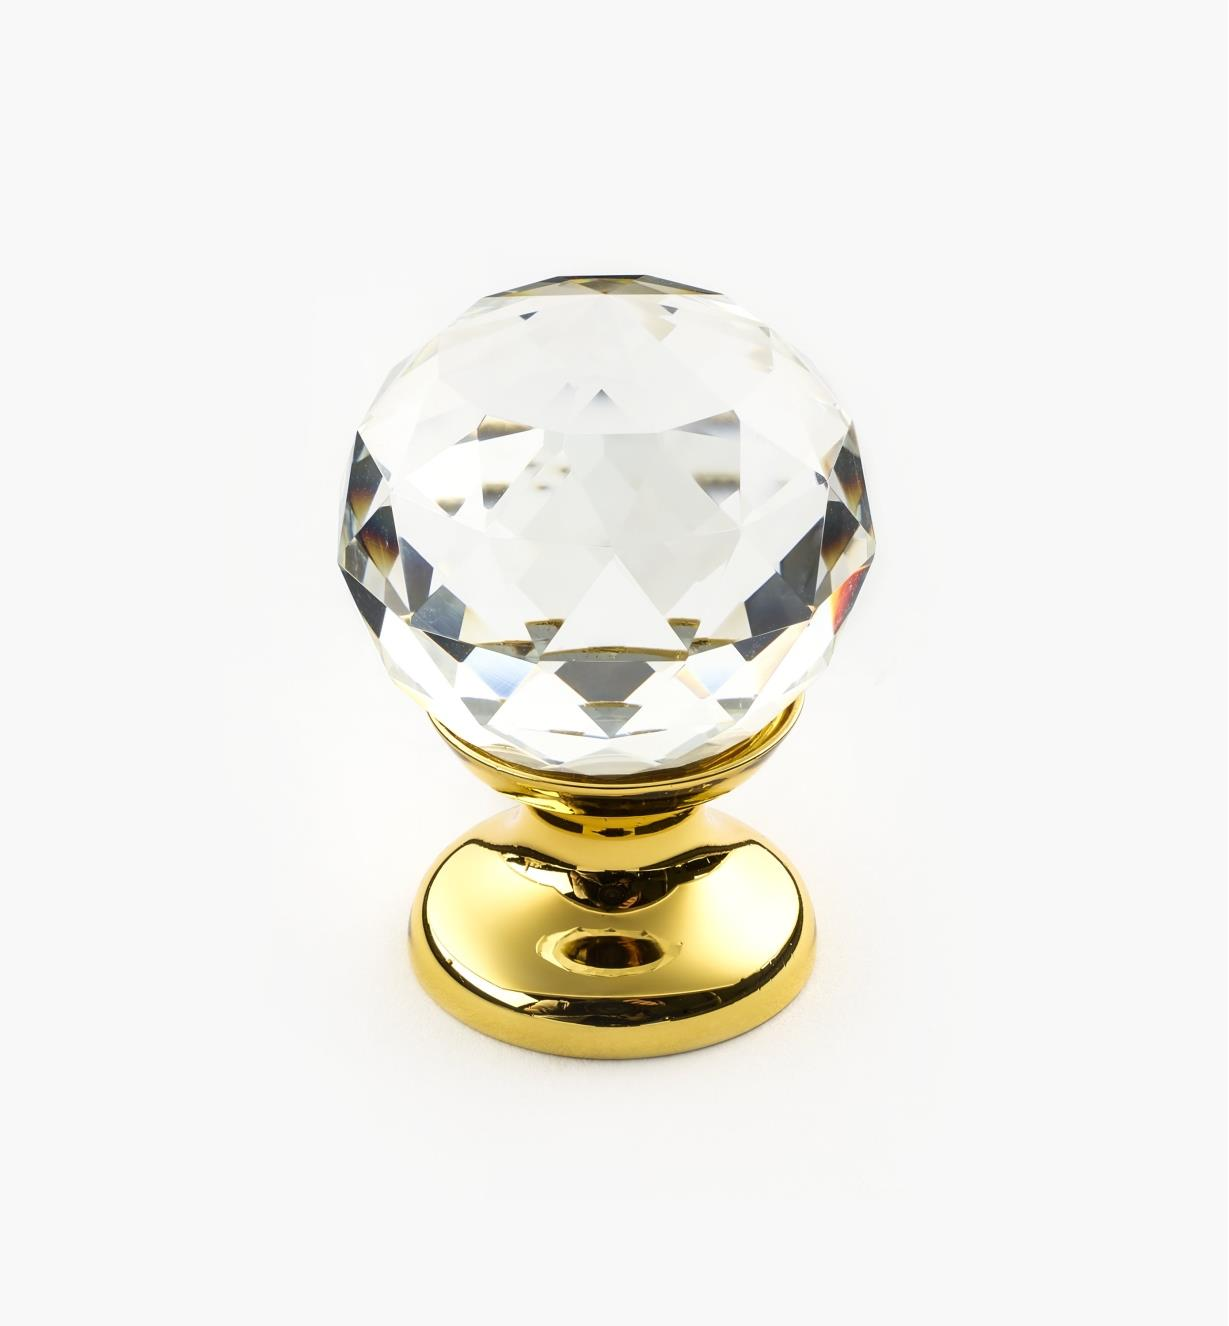 01A3460 - Small Faceted Glass Knob, PB